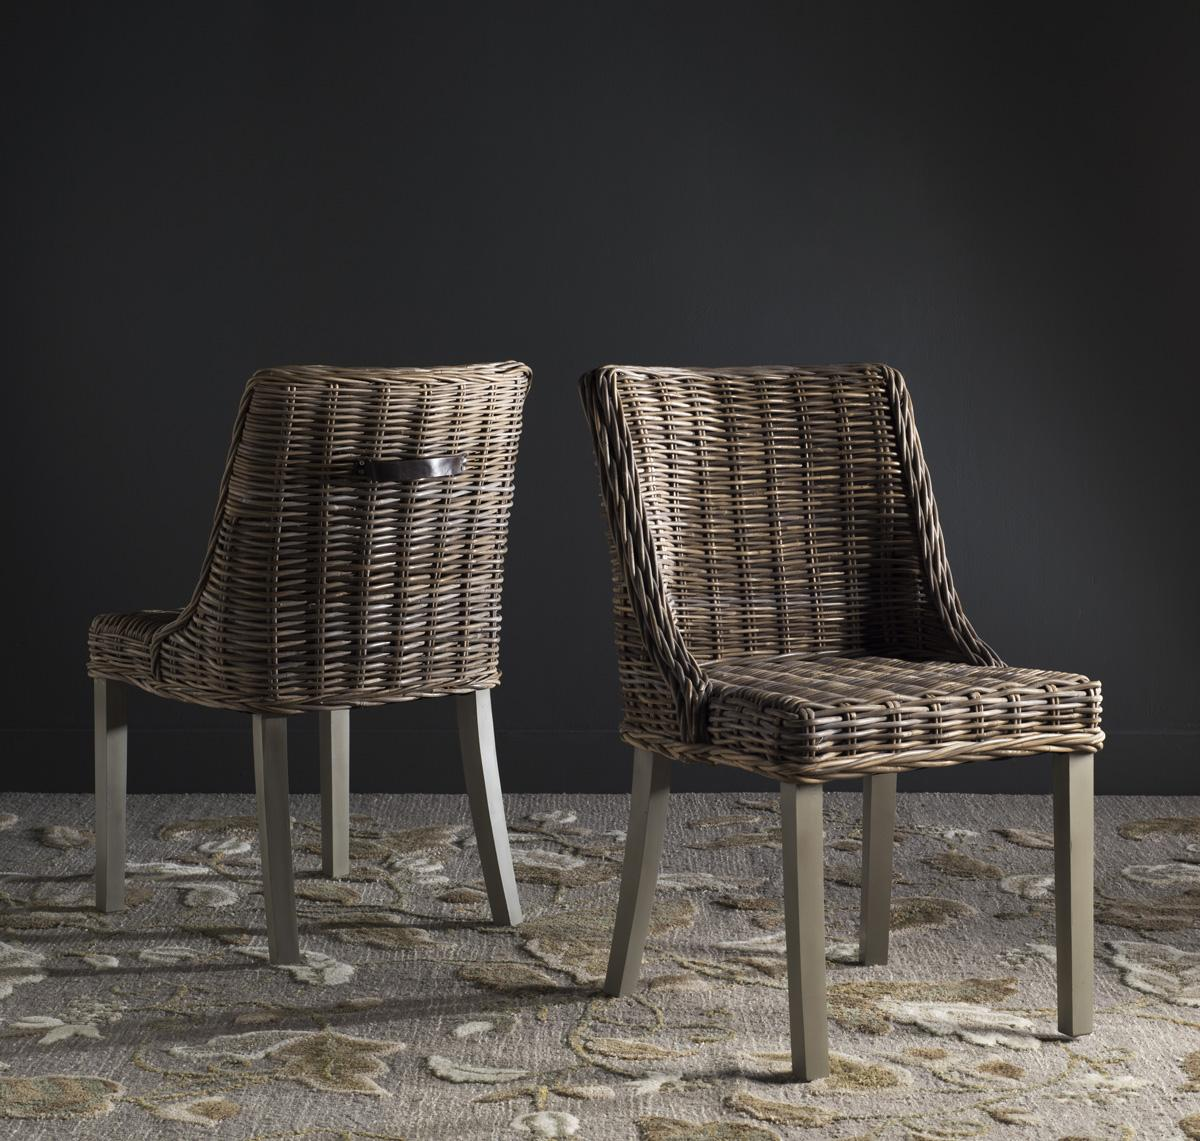 Caprice 18 H Wicker Dining Chair With Leather Handle Sea7005a Set2 Chairs